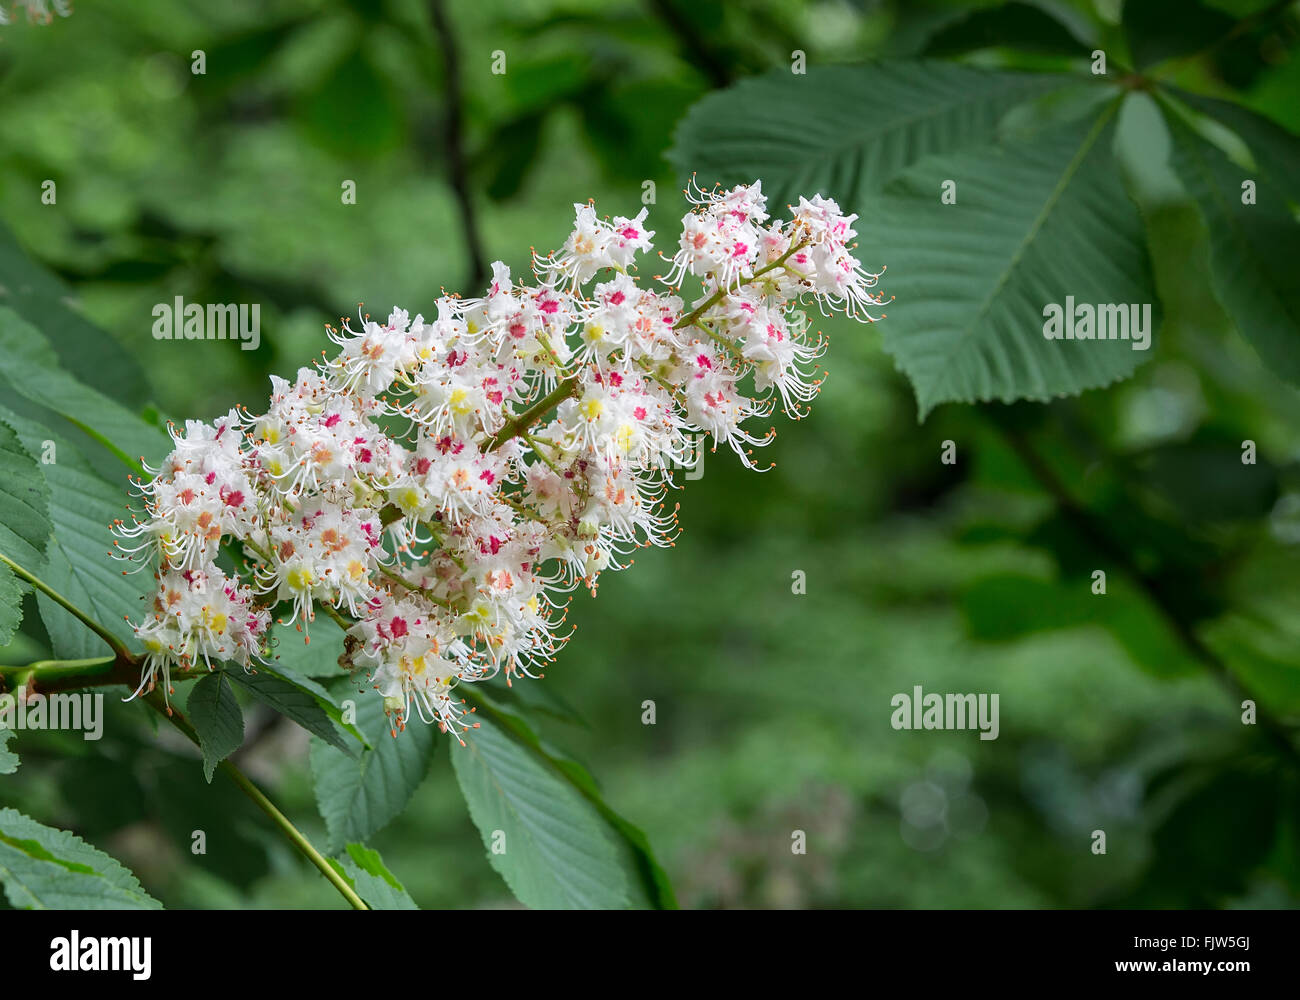 common horse chestnut (Aesculus hippocastanum), blooming branch,Spring - Stock Image